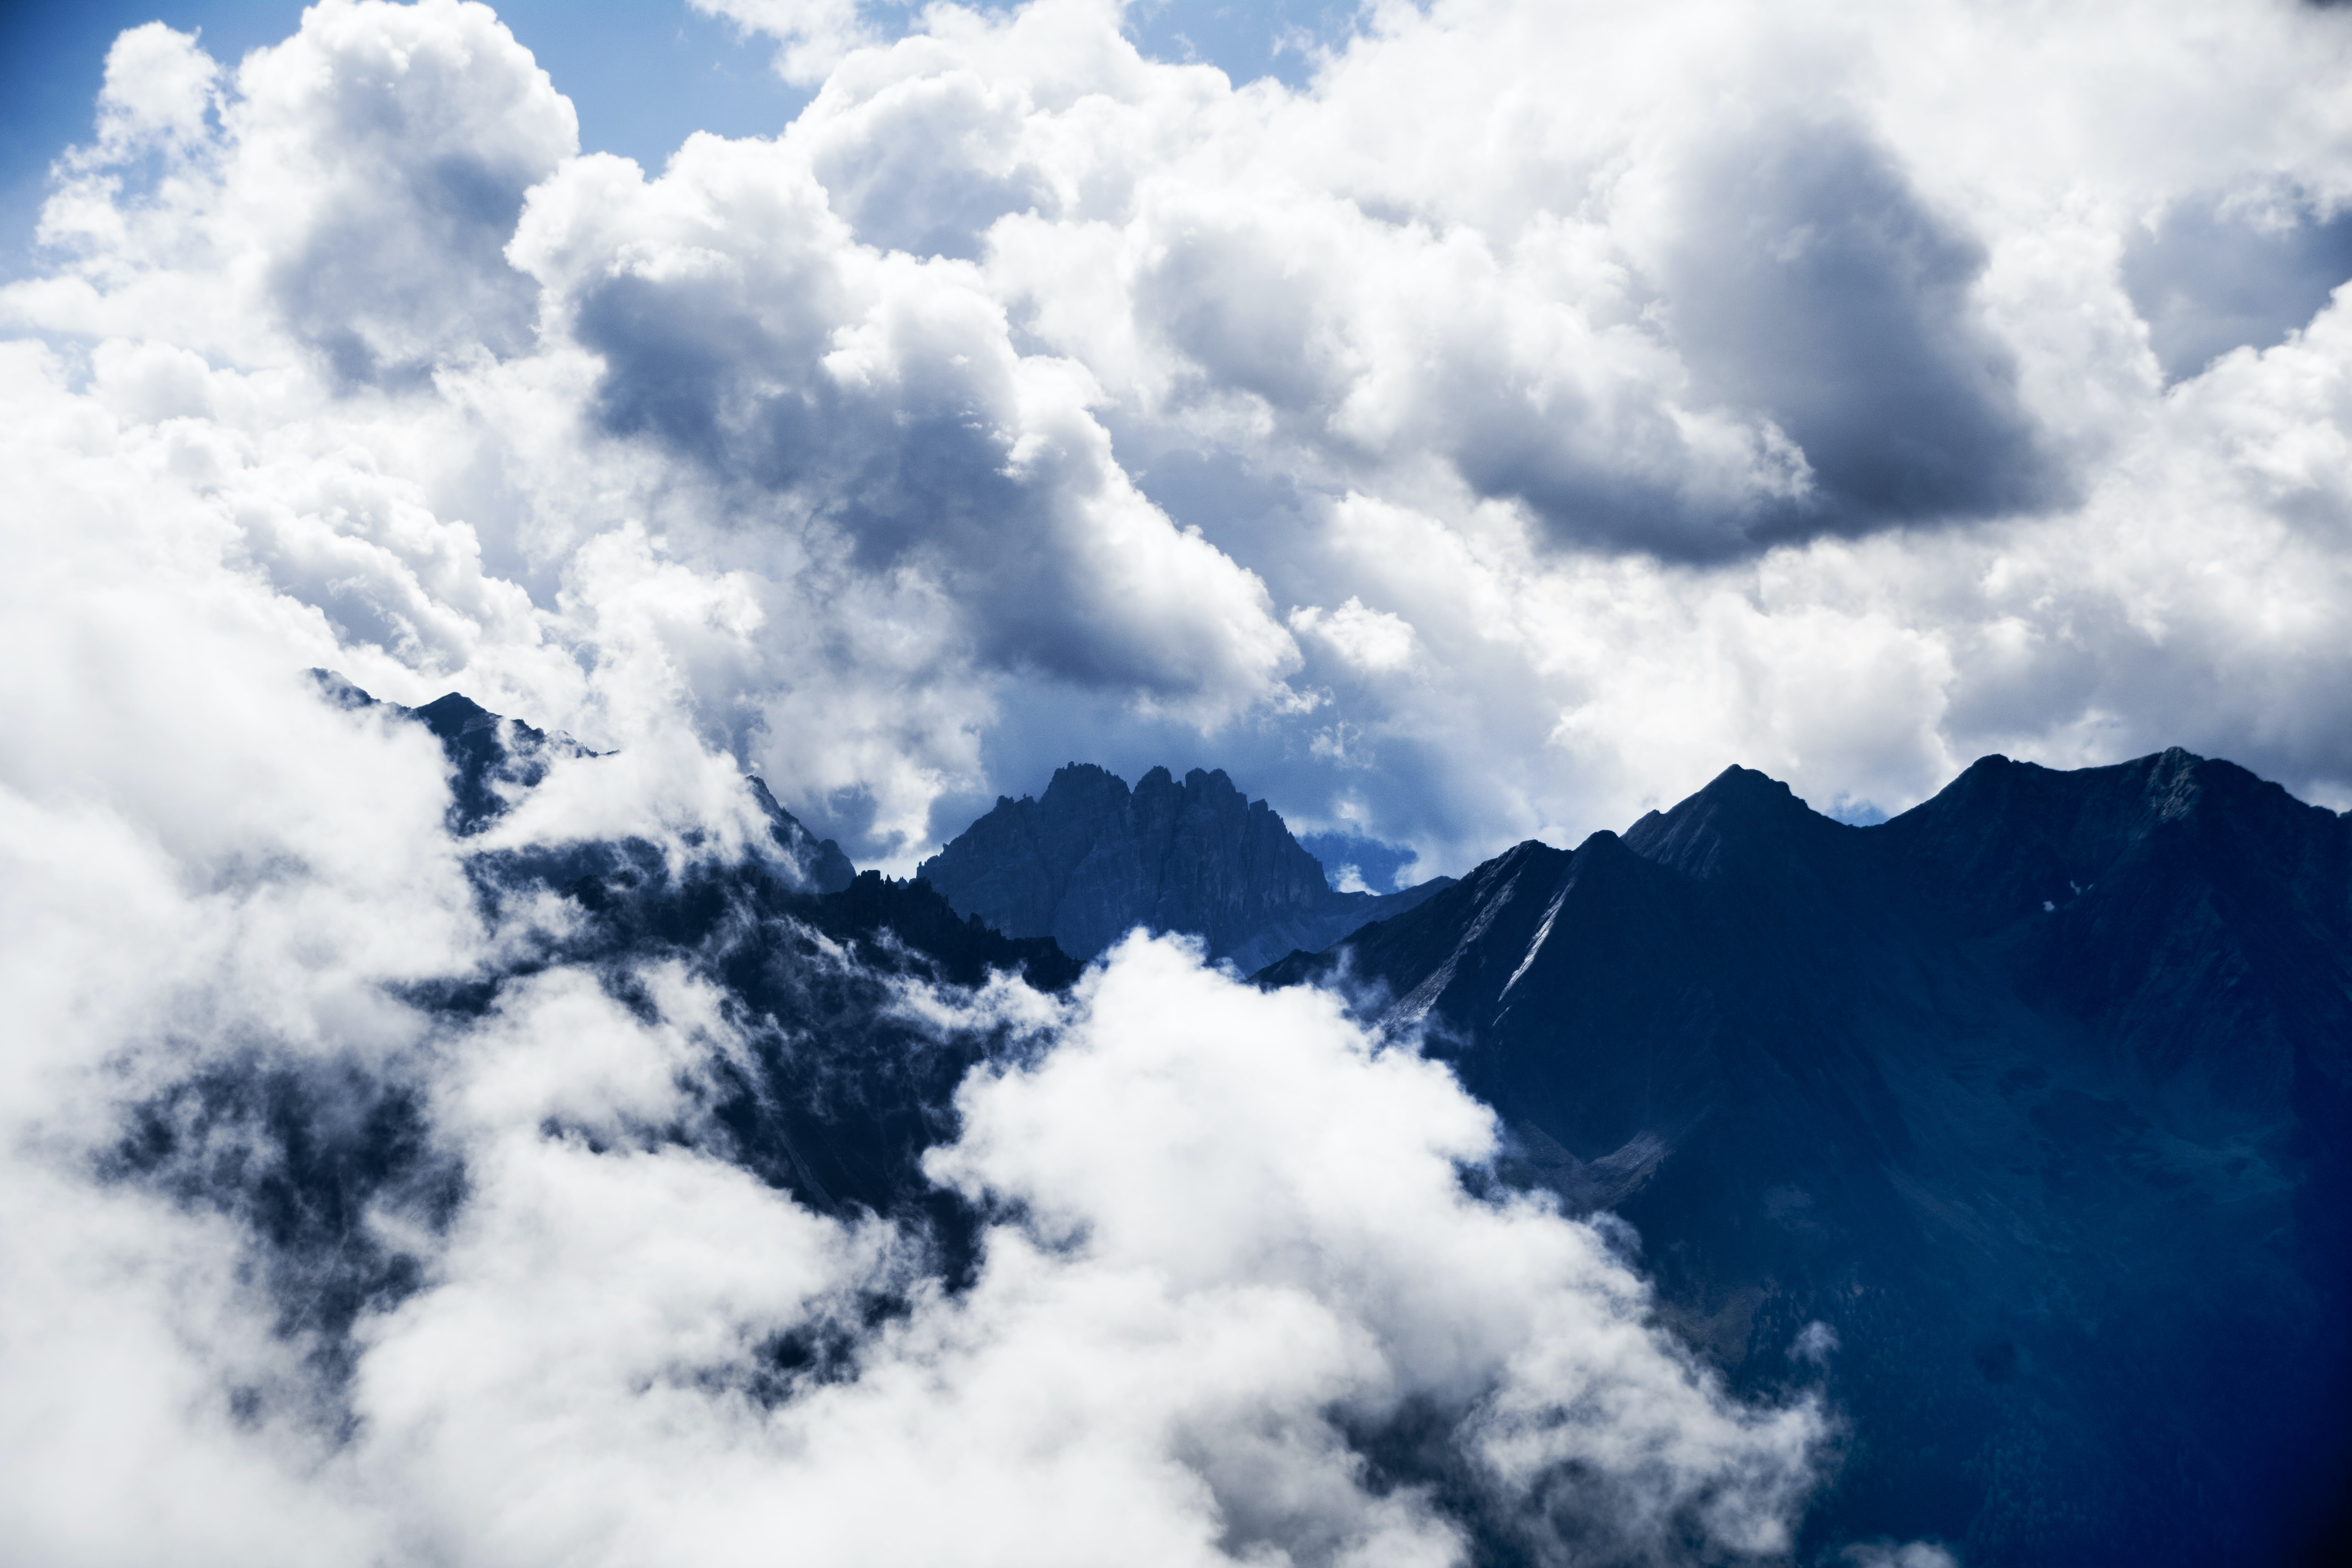 Clouds partly obscuring the view on a tall mountain range